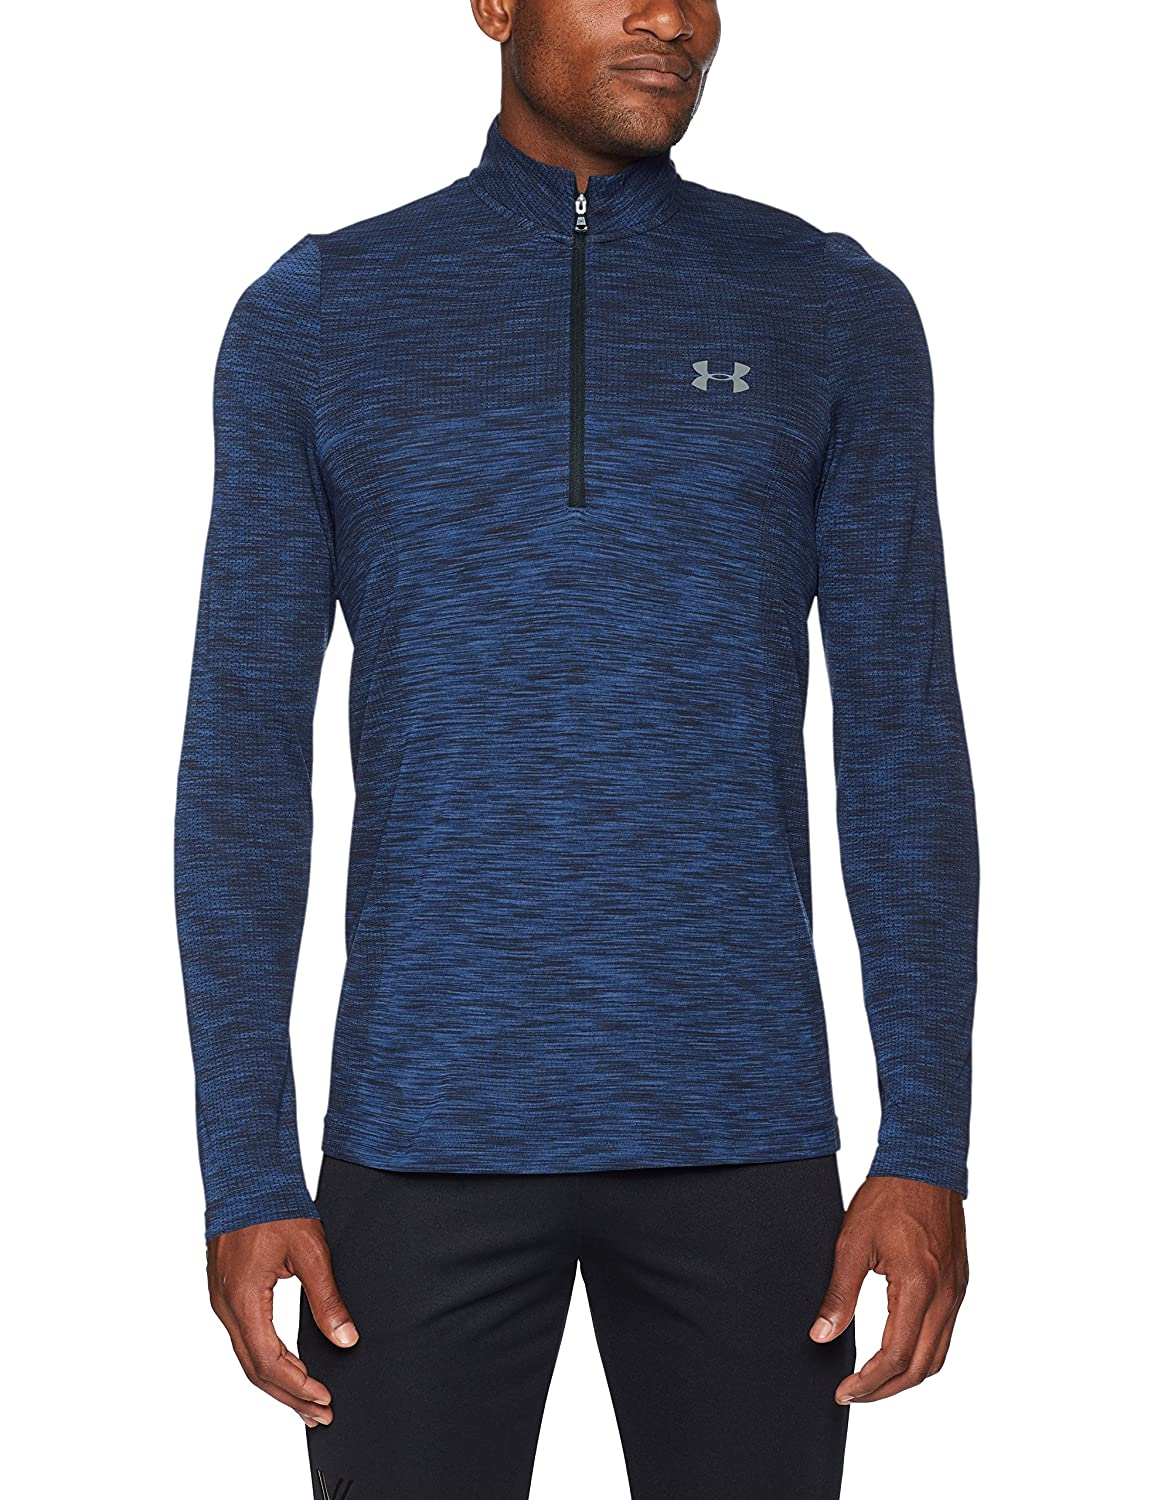 Under Armour Herren Vanish Seamless 1/2 Zip Oberteil